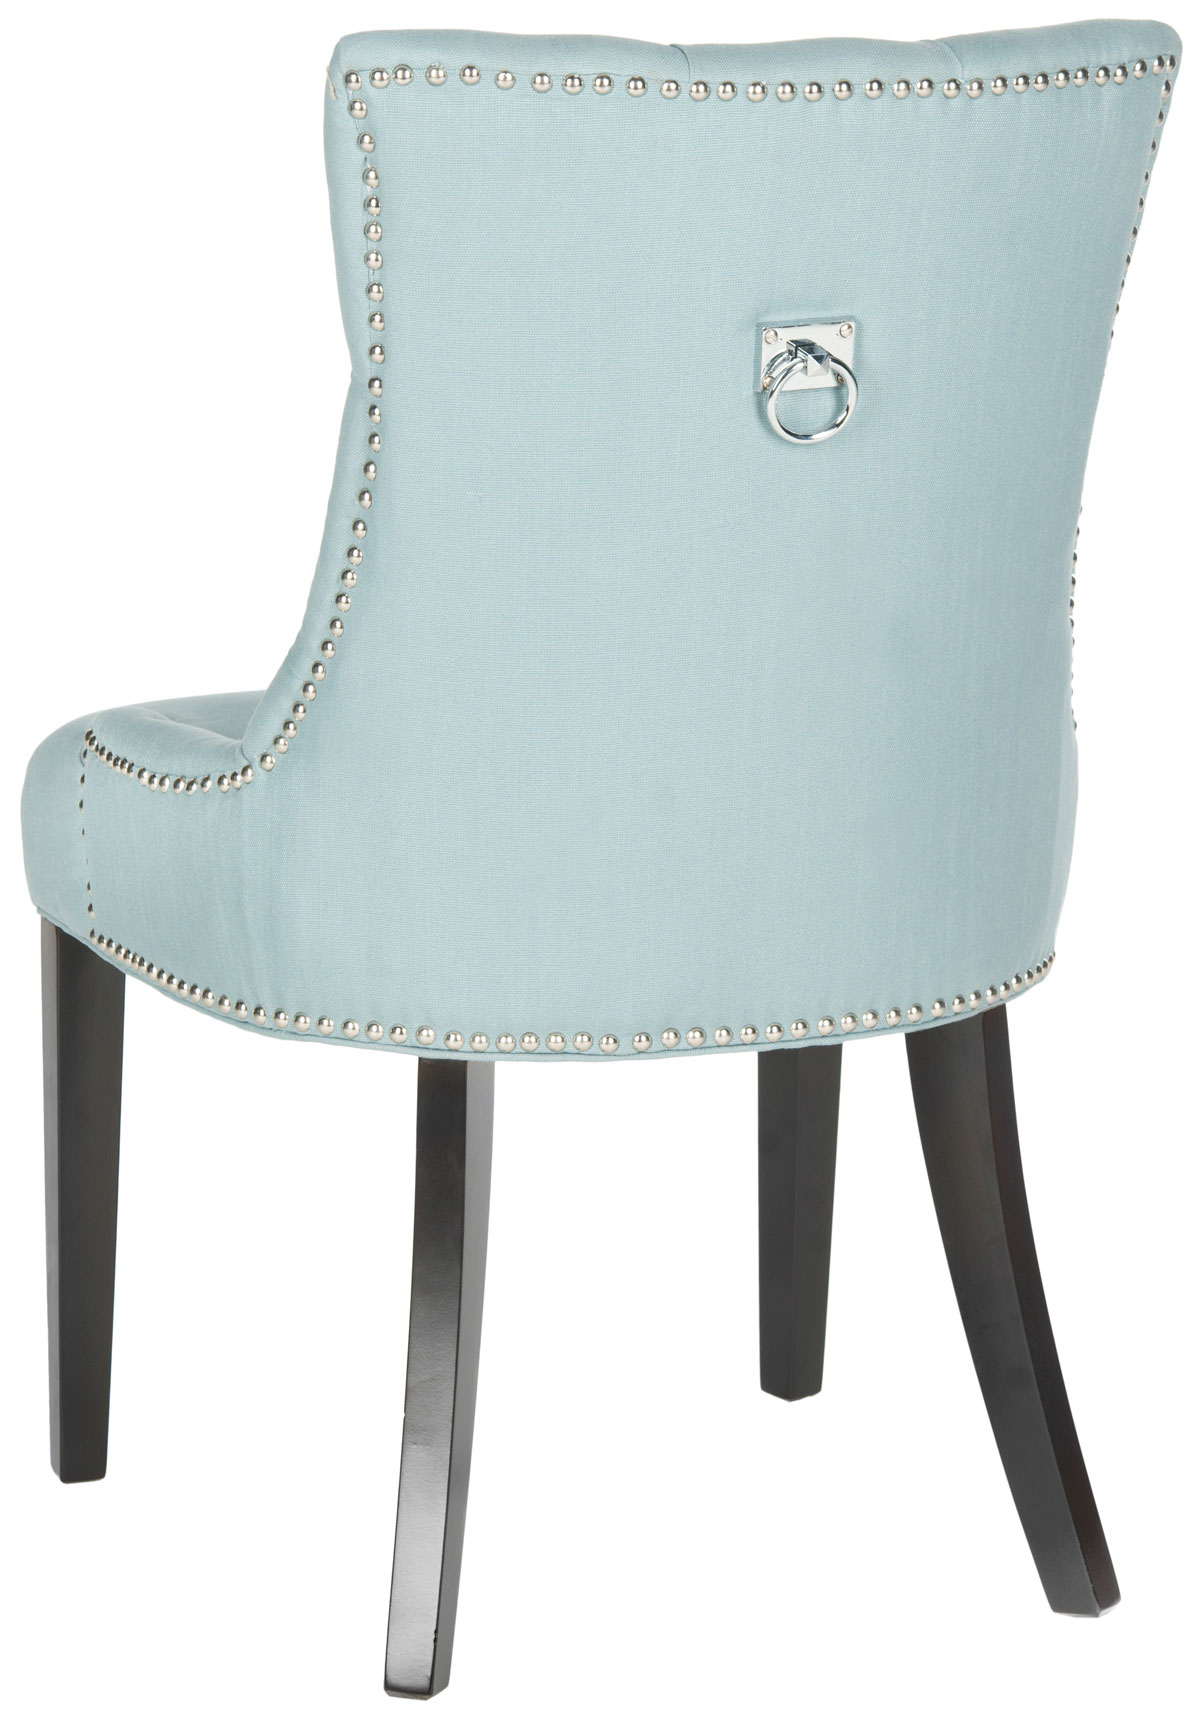 Harlow 19 H Tufted Ring Chair Set Of 2 Silver Nail Heads Mcr4716e Set2 Dining Chairs Color Light Blue